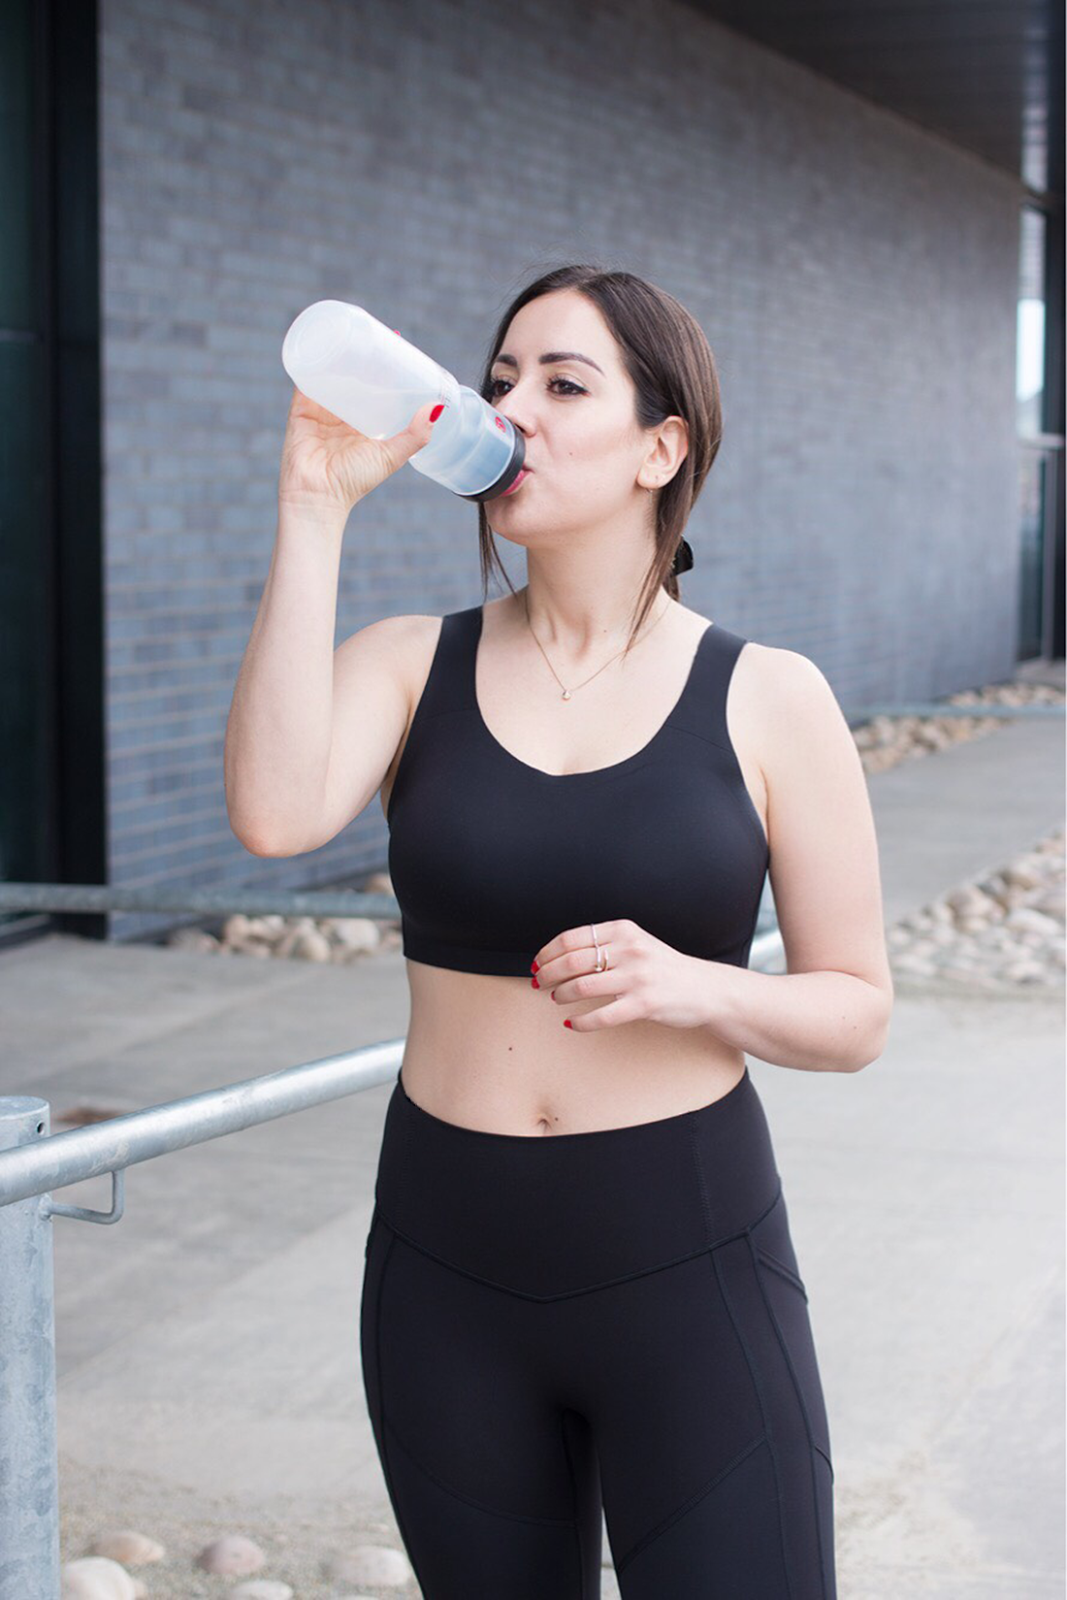 Finding The Ultimate Sports Bra: lululemon's Enlite Bra is a total winner